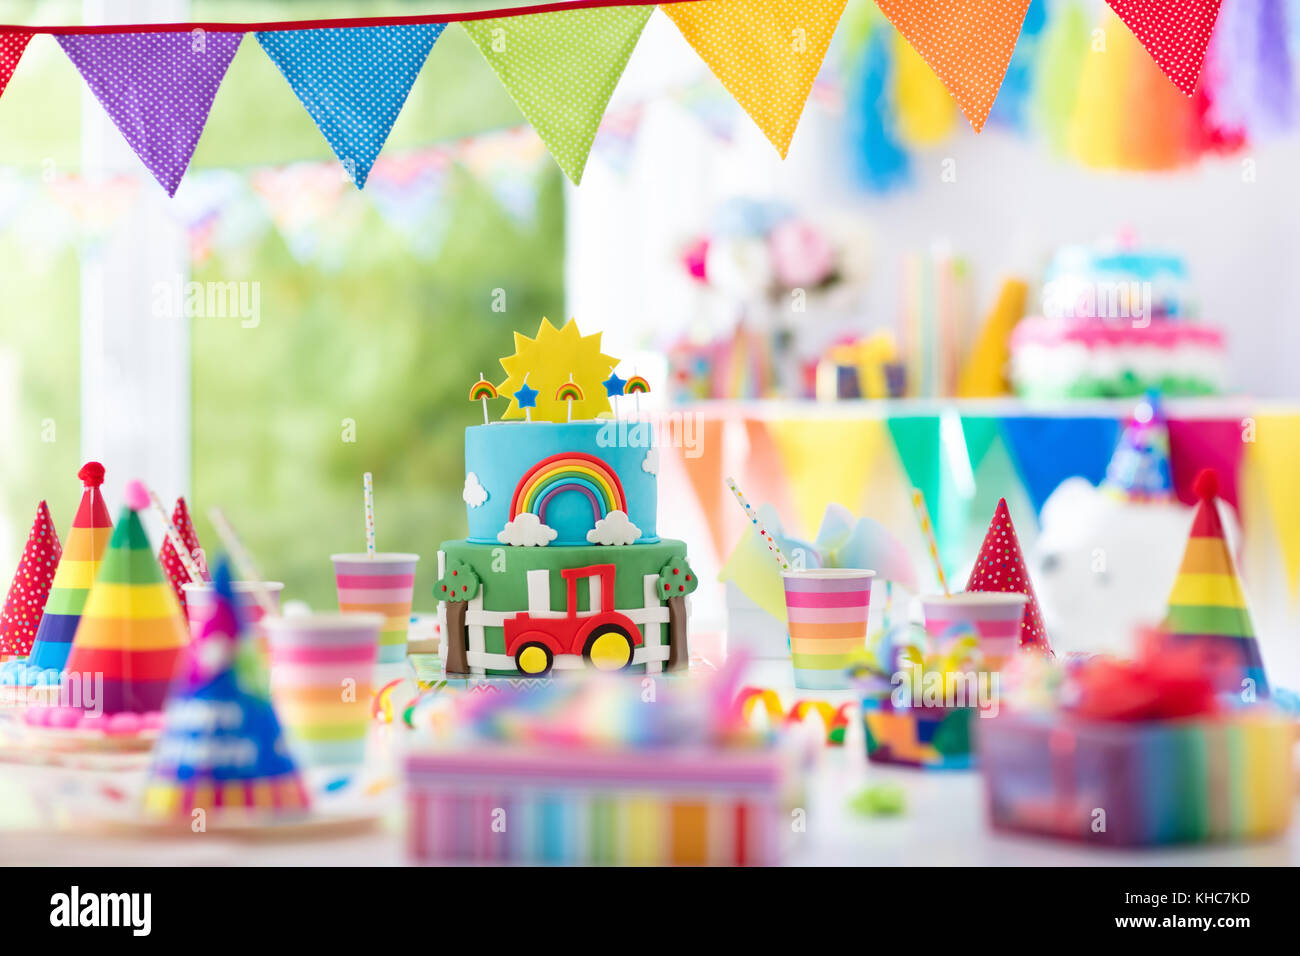 Kids Birthday Party Decoration Colorful Cake With Candles Farm And